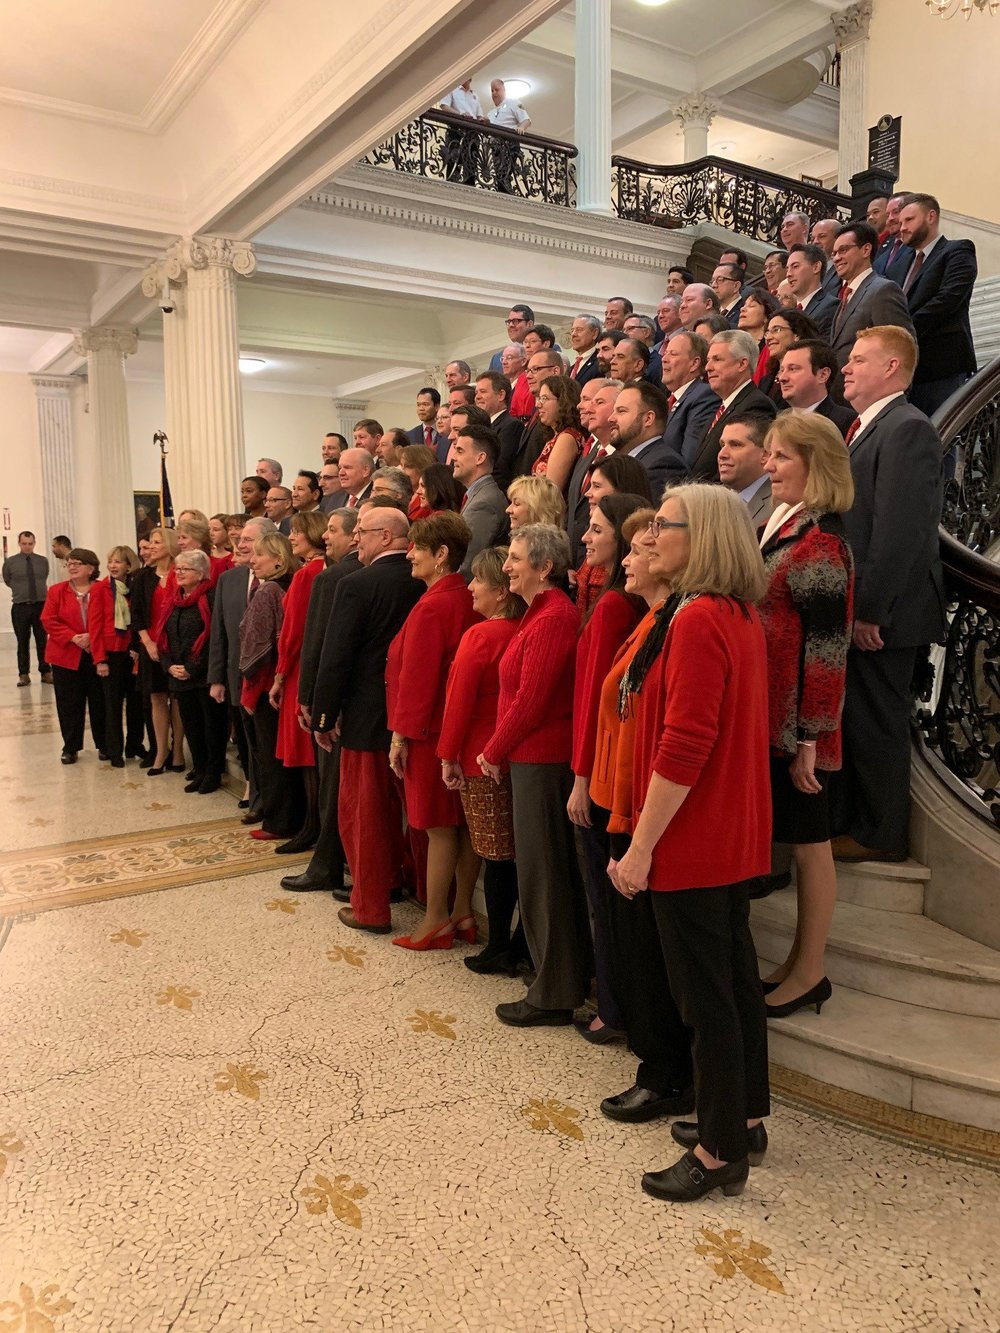 Dozens of legislators participate in the 'Go Red for Women' event at the Grand Staircase of the Massachusetts State House.